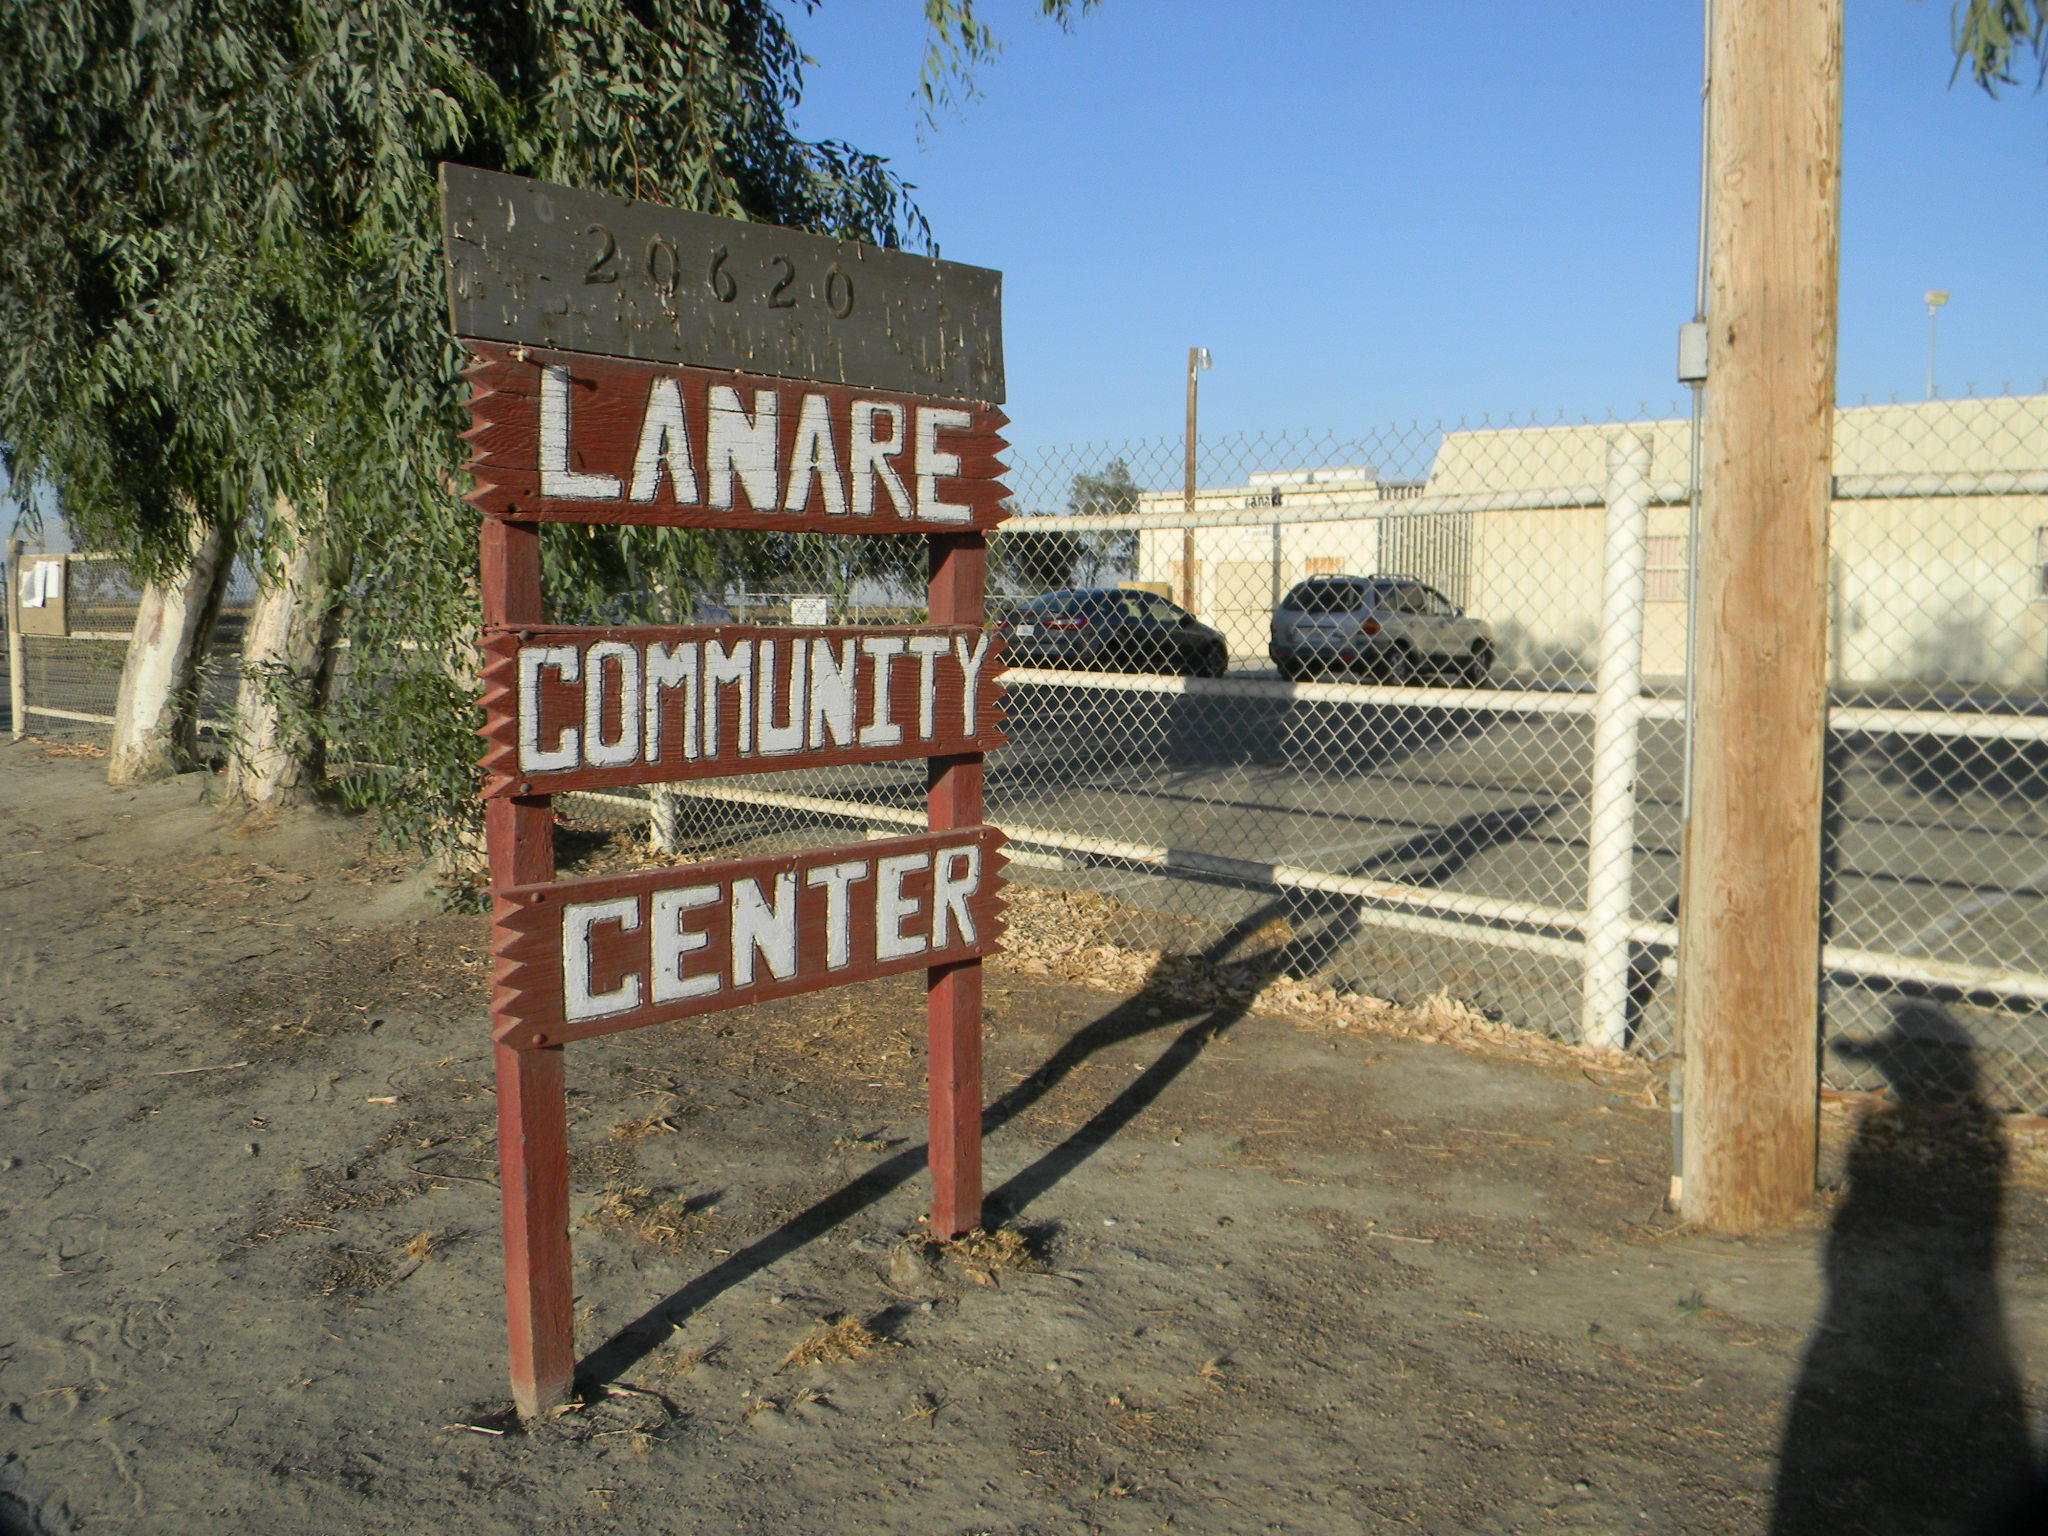 Lanare+community+center